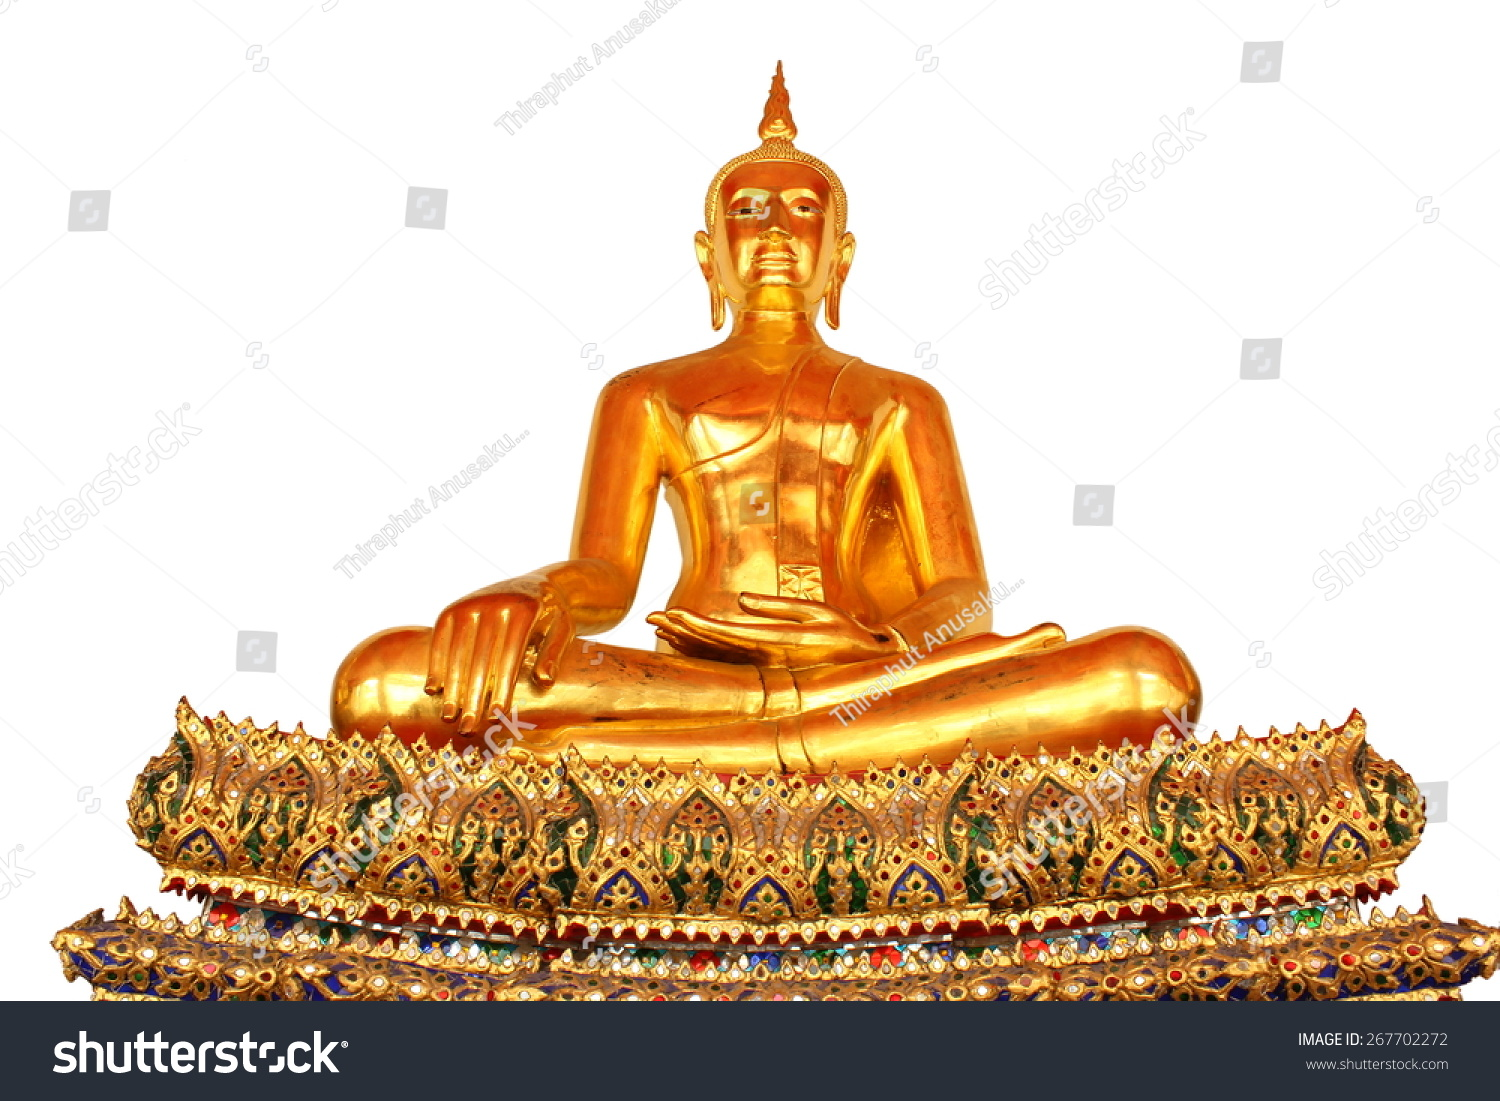 seatonville buddhist singles Browse photo profiles & contact who are buddhist, religion on australia's #1  dating site rsvp free to browse & join.